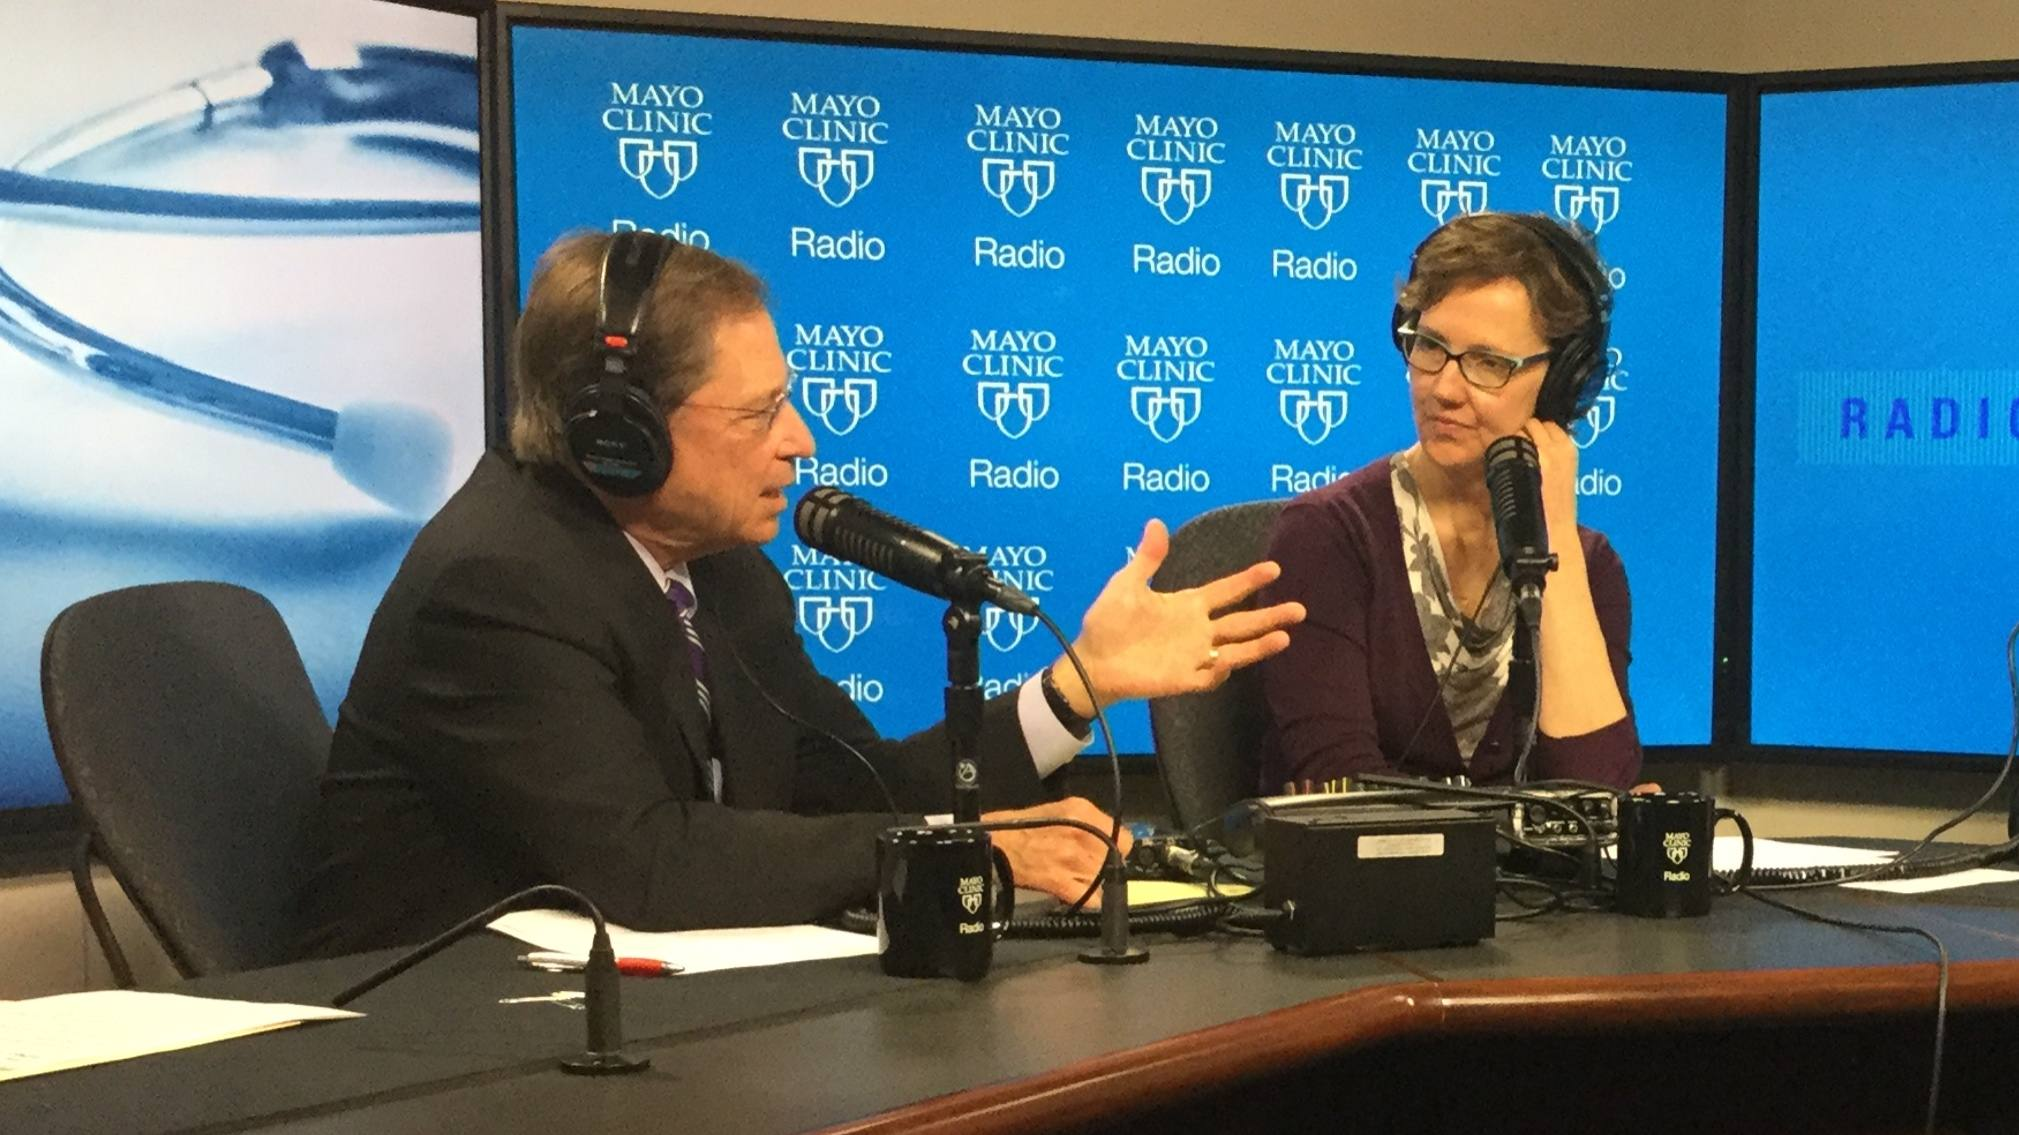 Dr. Tom Shives and Tracy McCray on the Mayo Clinic Radio set